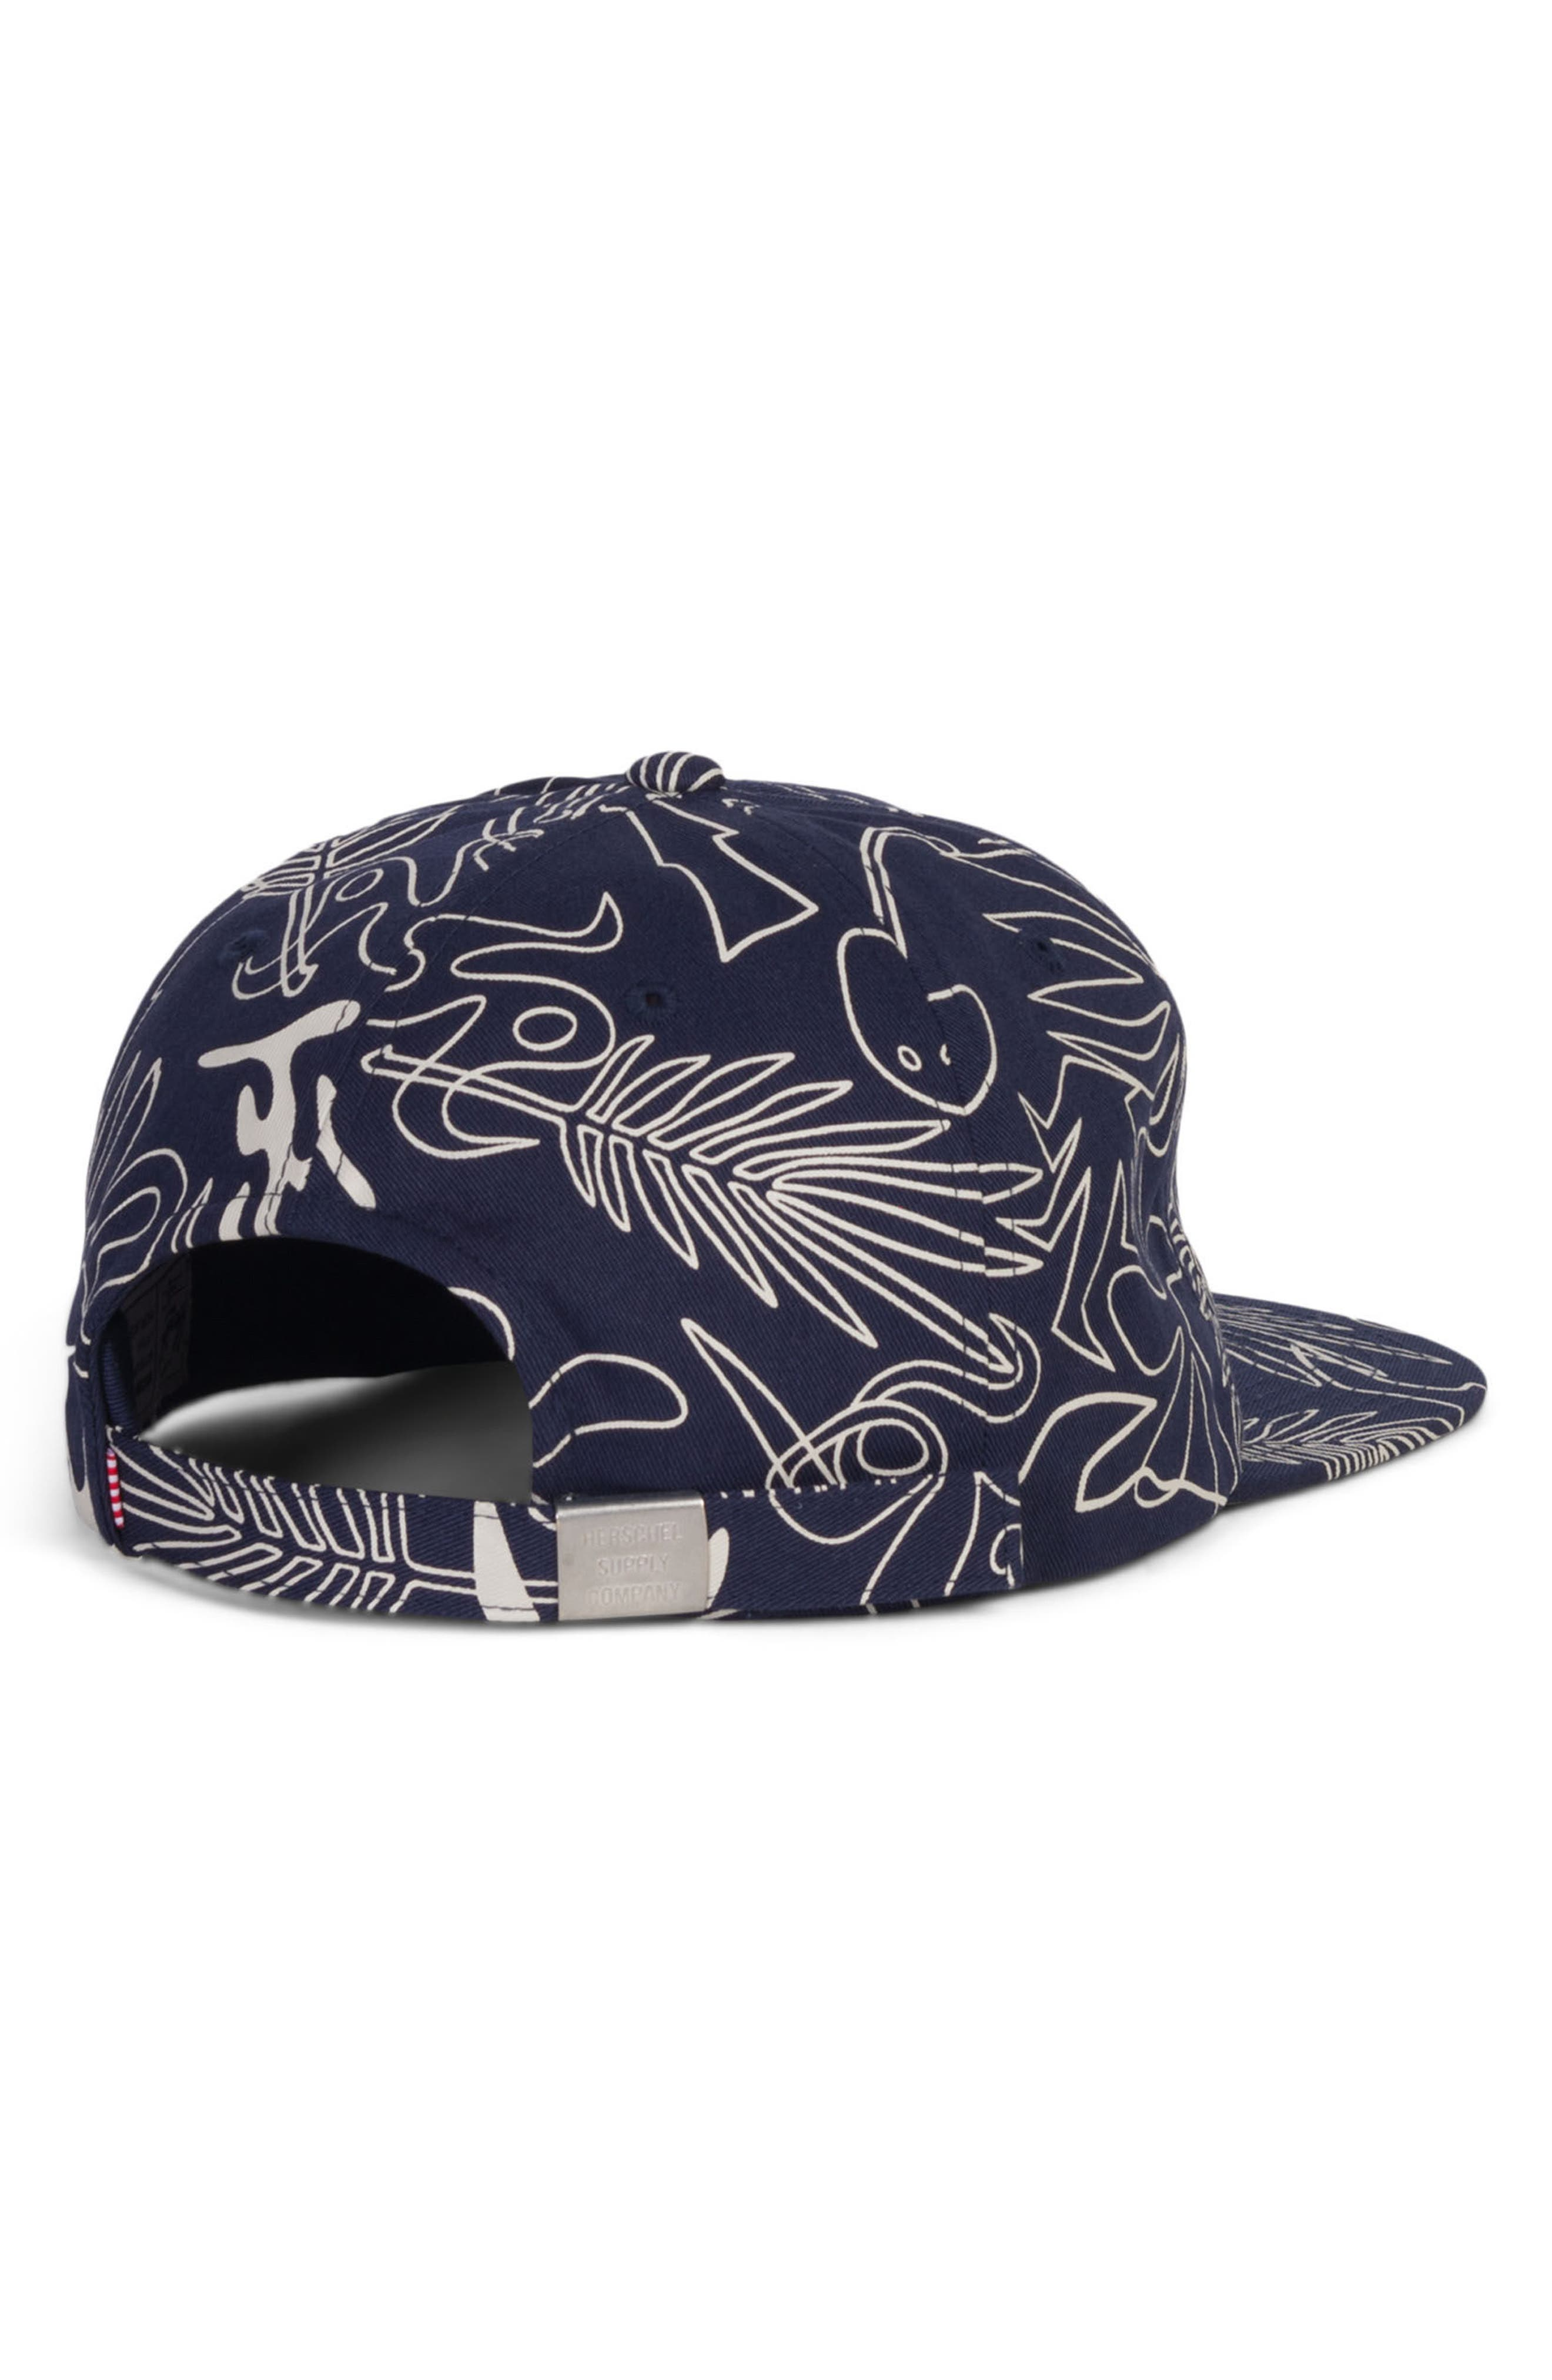 Albert Baseball Cap,                             Alternate thumbnail 2, color,                             Abstract Island